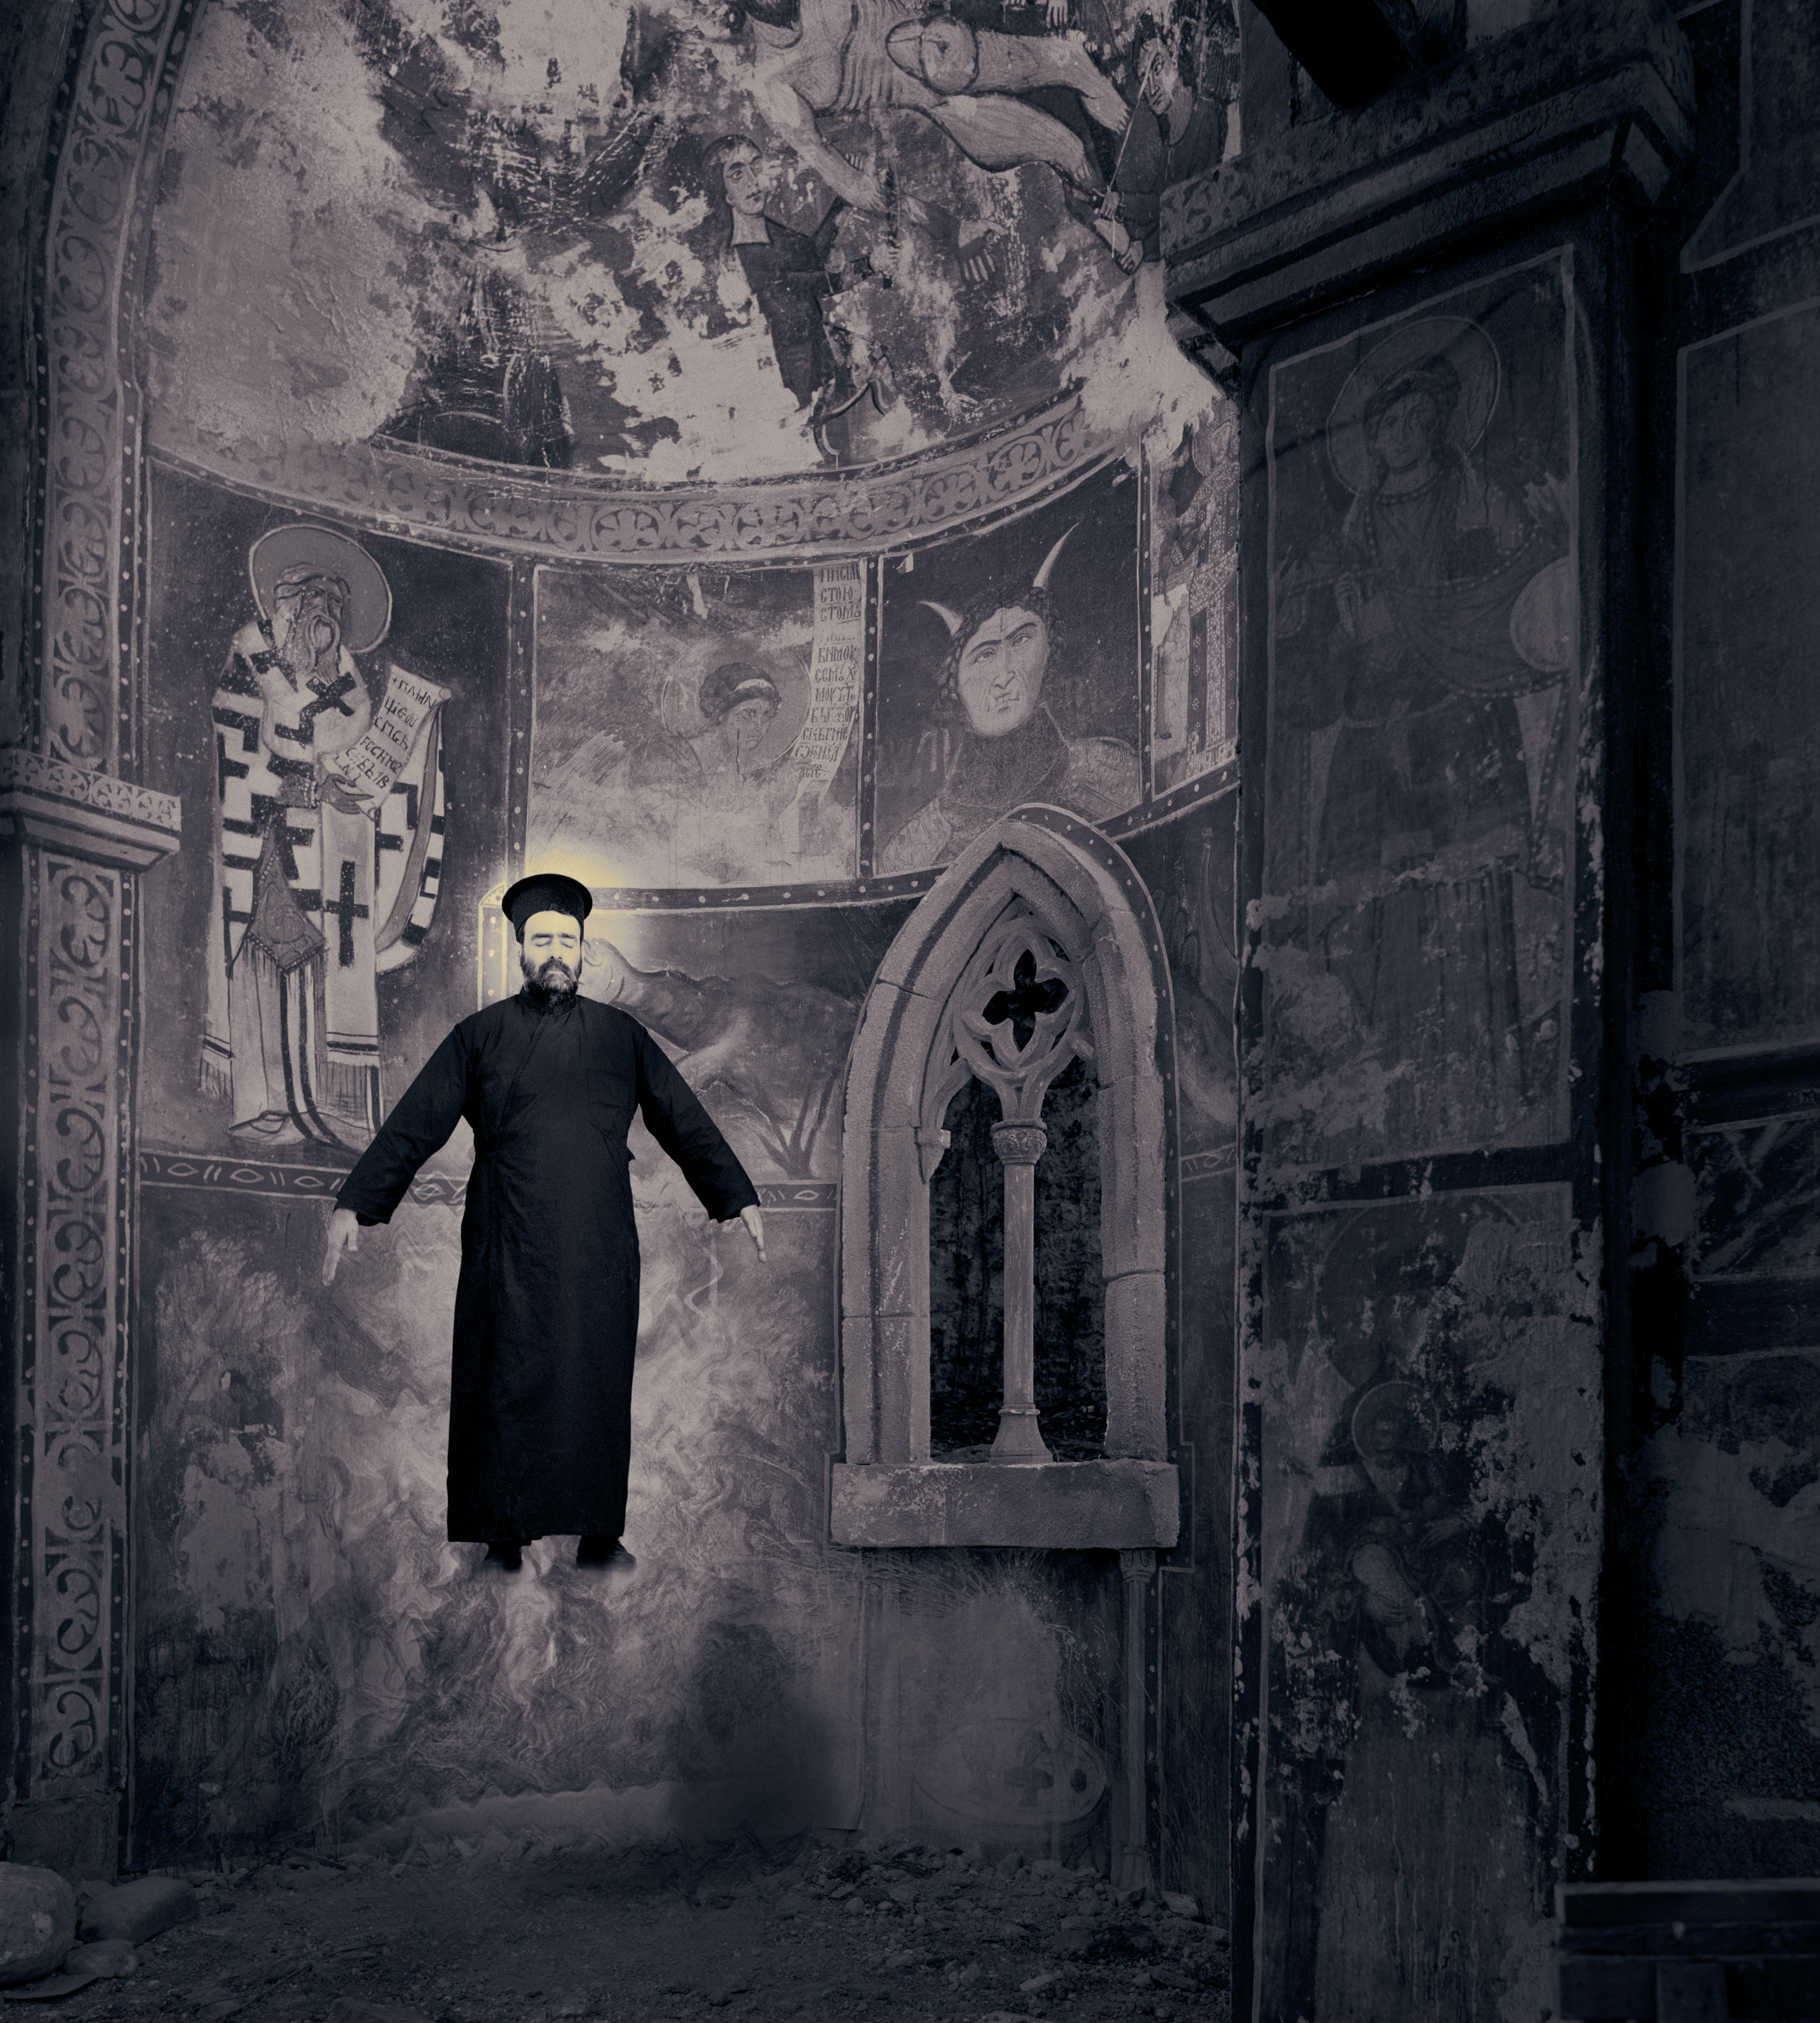 Joan Fontcuberta - Art for Peace Award